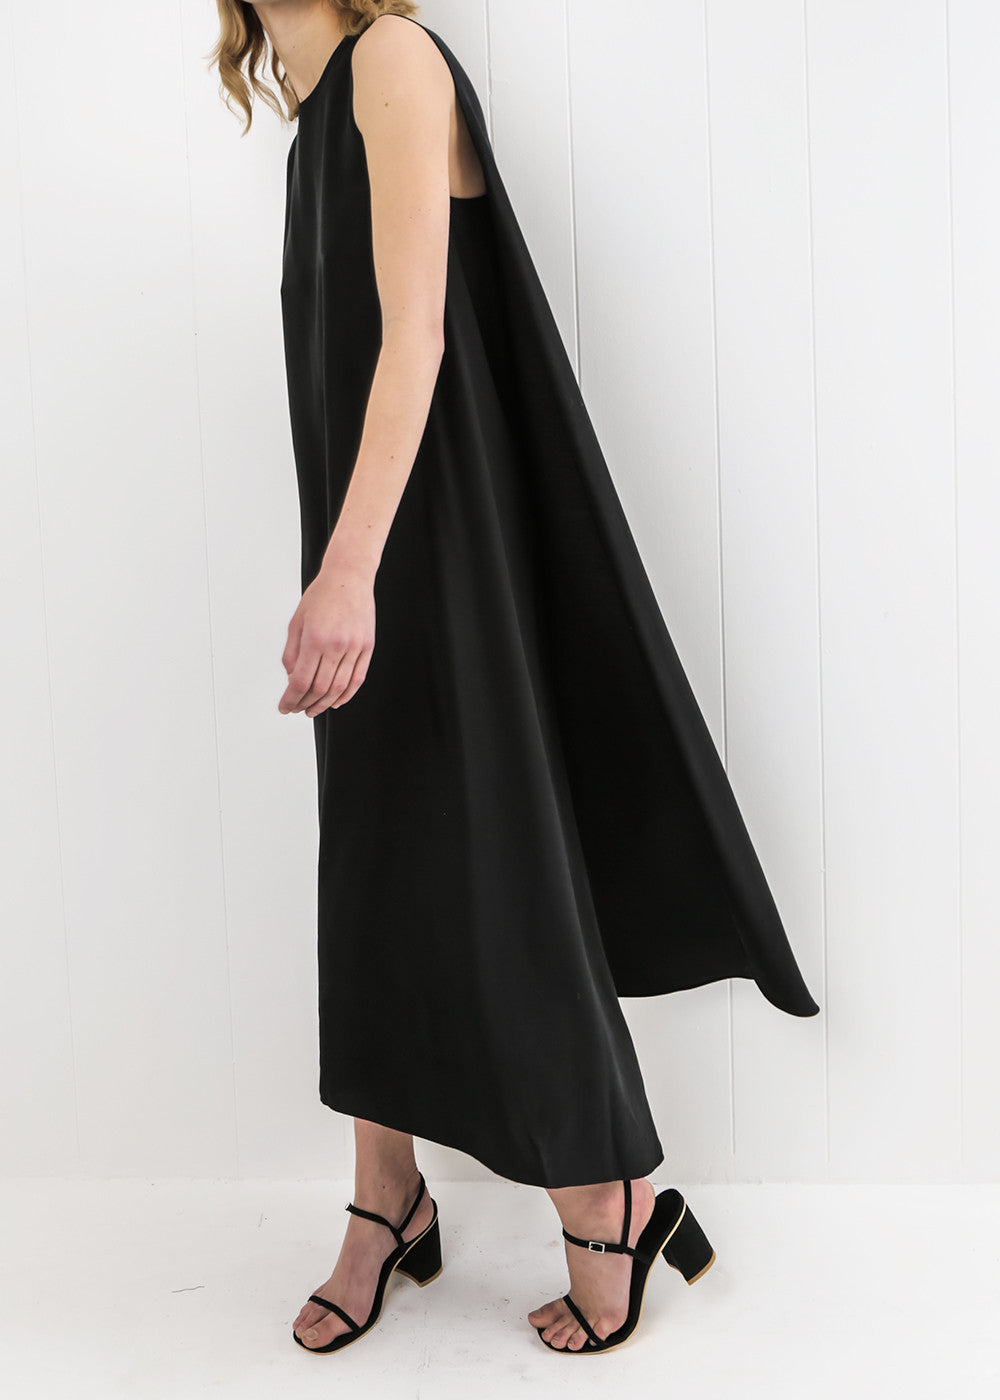 Kaarem Turn Sleeveless Maxi Dress — New Classics Studios